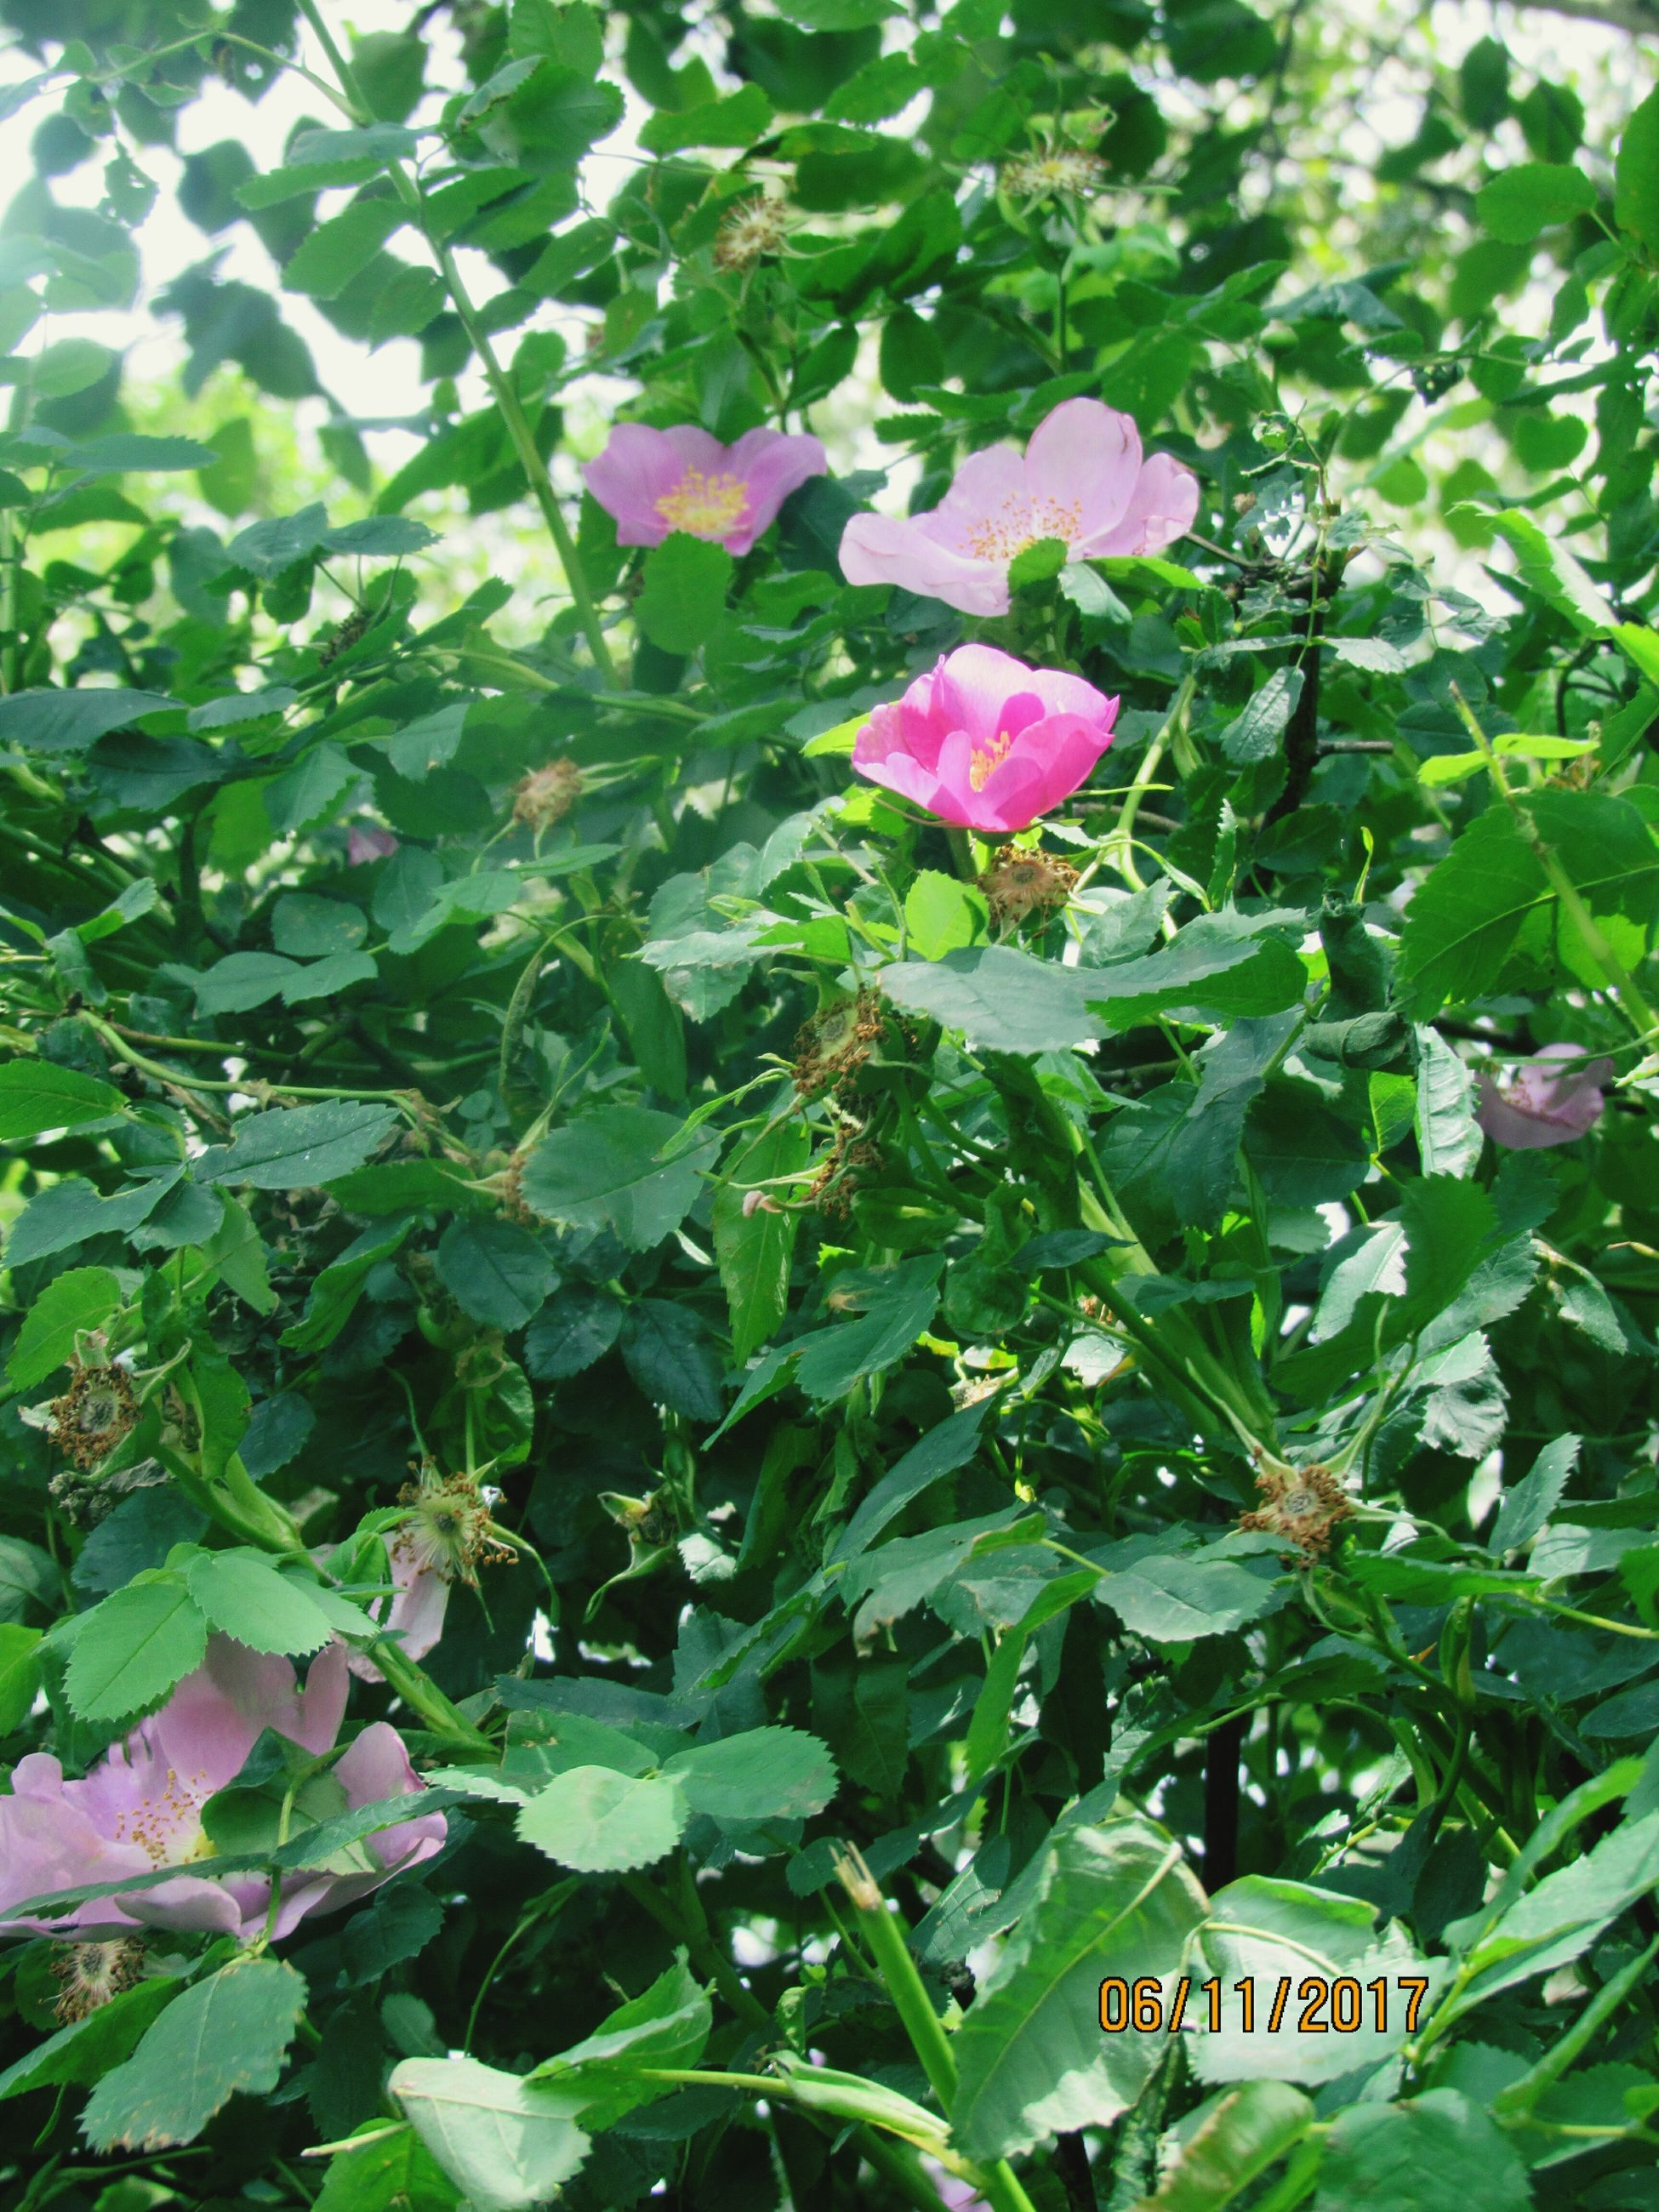 growth, leaf, flower, plant, nature, green color, beauty in nature, petal, pink color, freshness, blooming, no people, fragility, outdoors, day, close-up, flower head, periwinkle